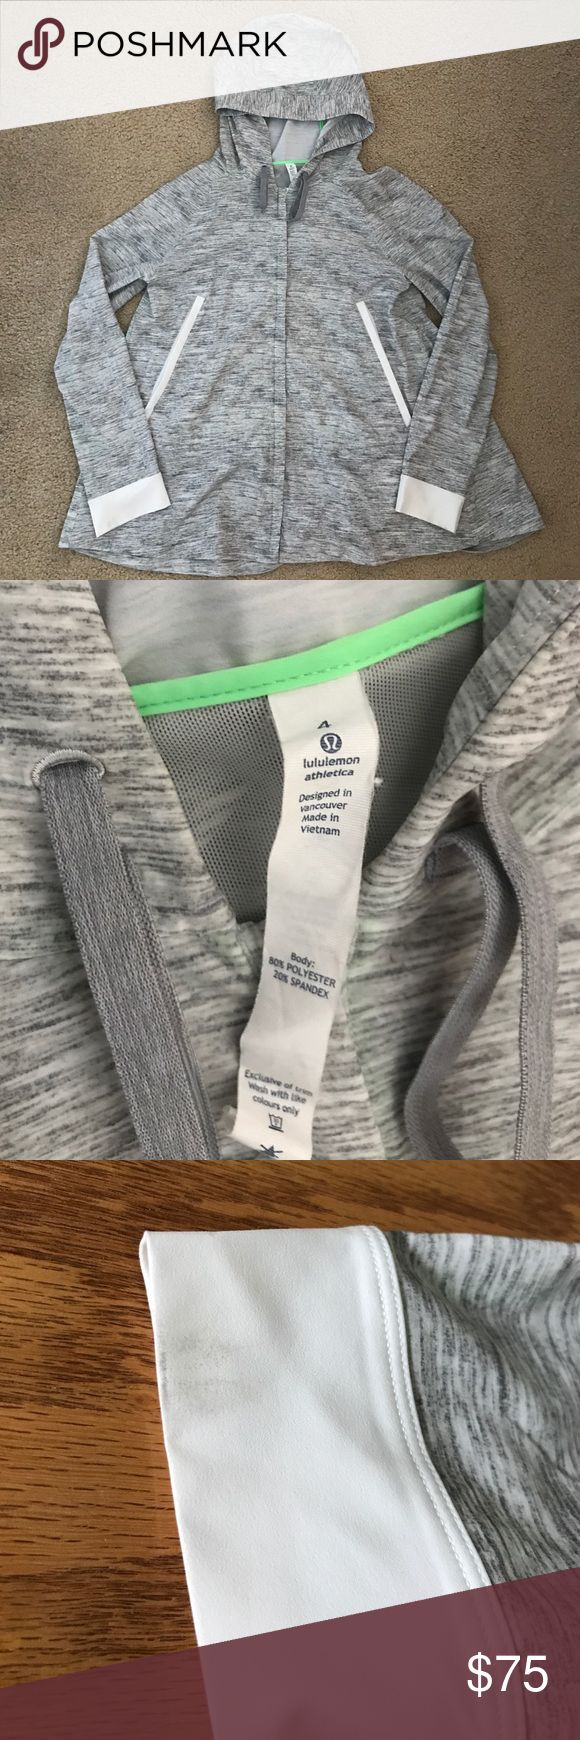 Lululemon Sun Showers Lightweight Rain Jacket Perfect condition lightweight jacket with a cute A-line shape. I love this piece but never wear it.  Very slight staining at cuffs, see picture lululemon athletica Jackets & Coats